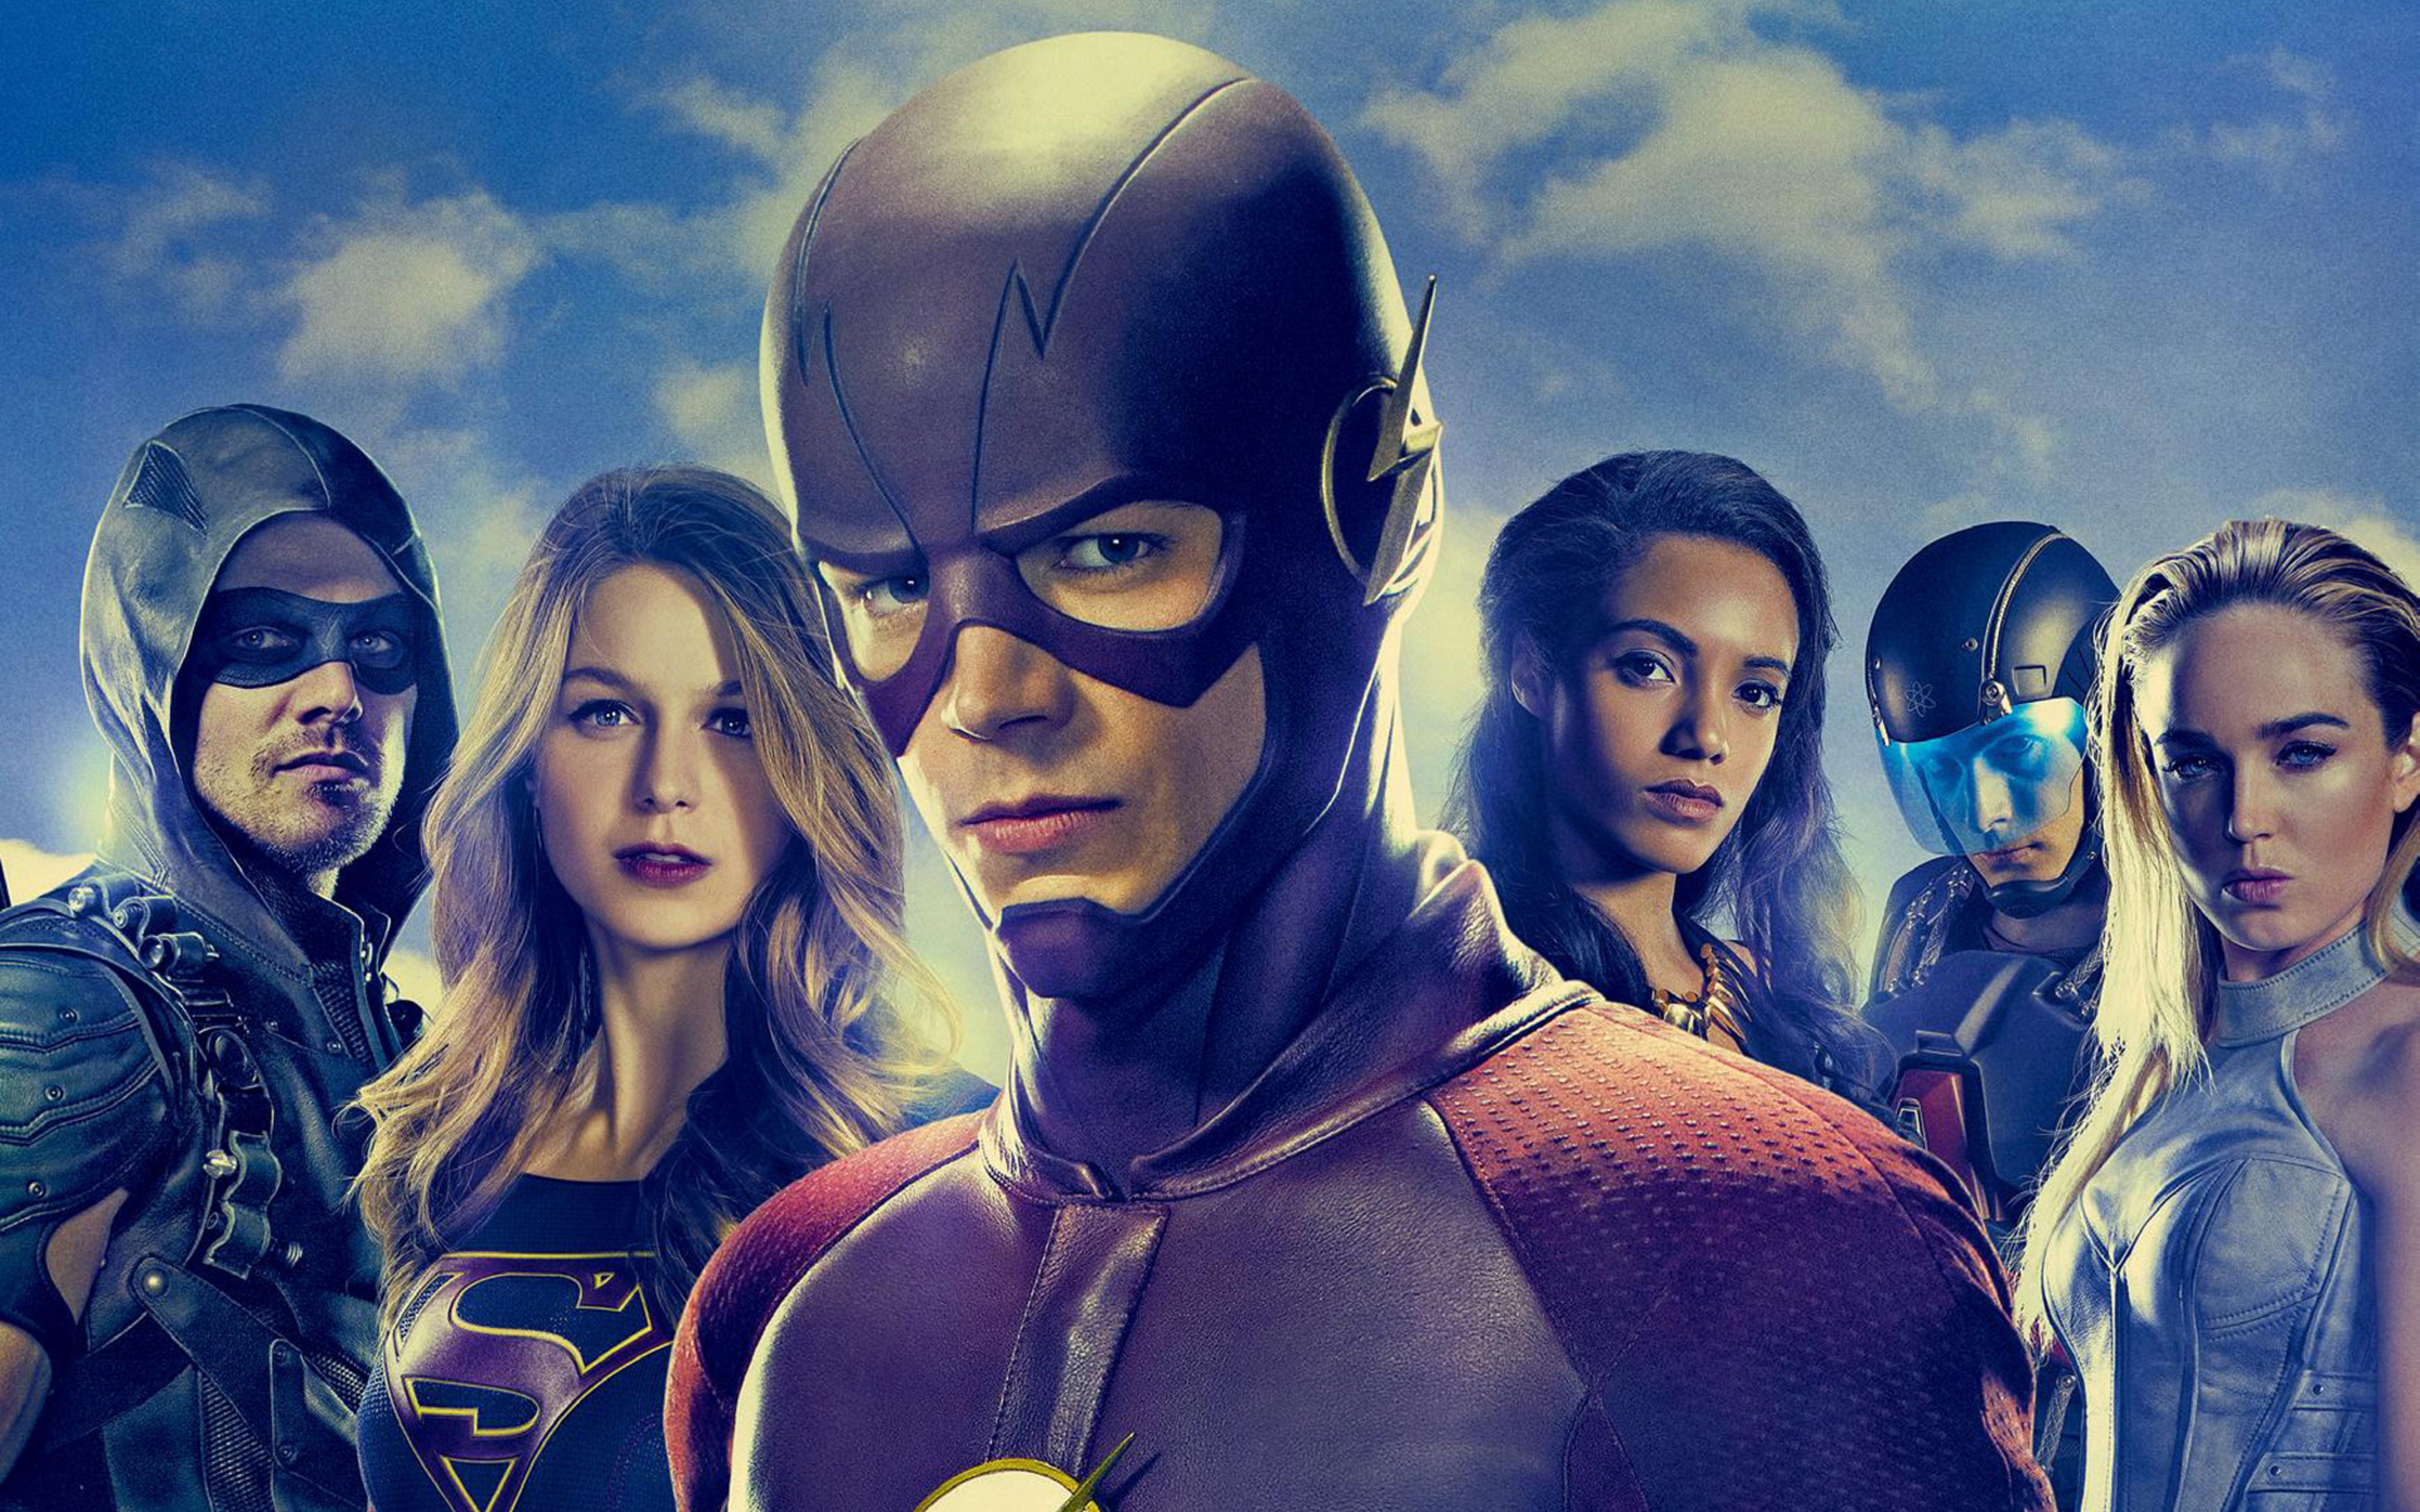 2880x1800 flash supergirl arrow tv series macbook pro retina hd 4k